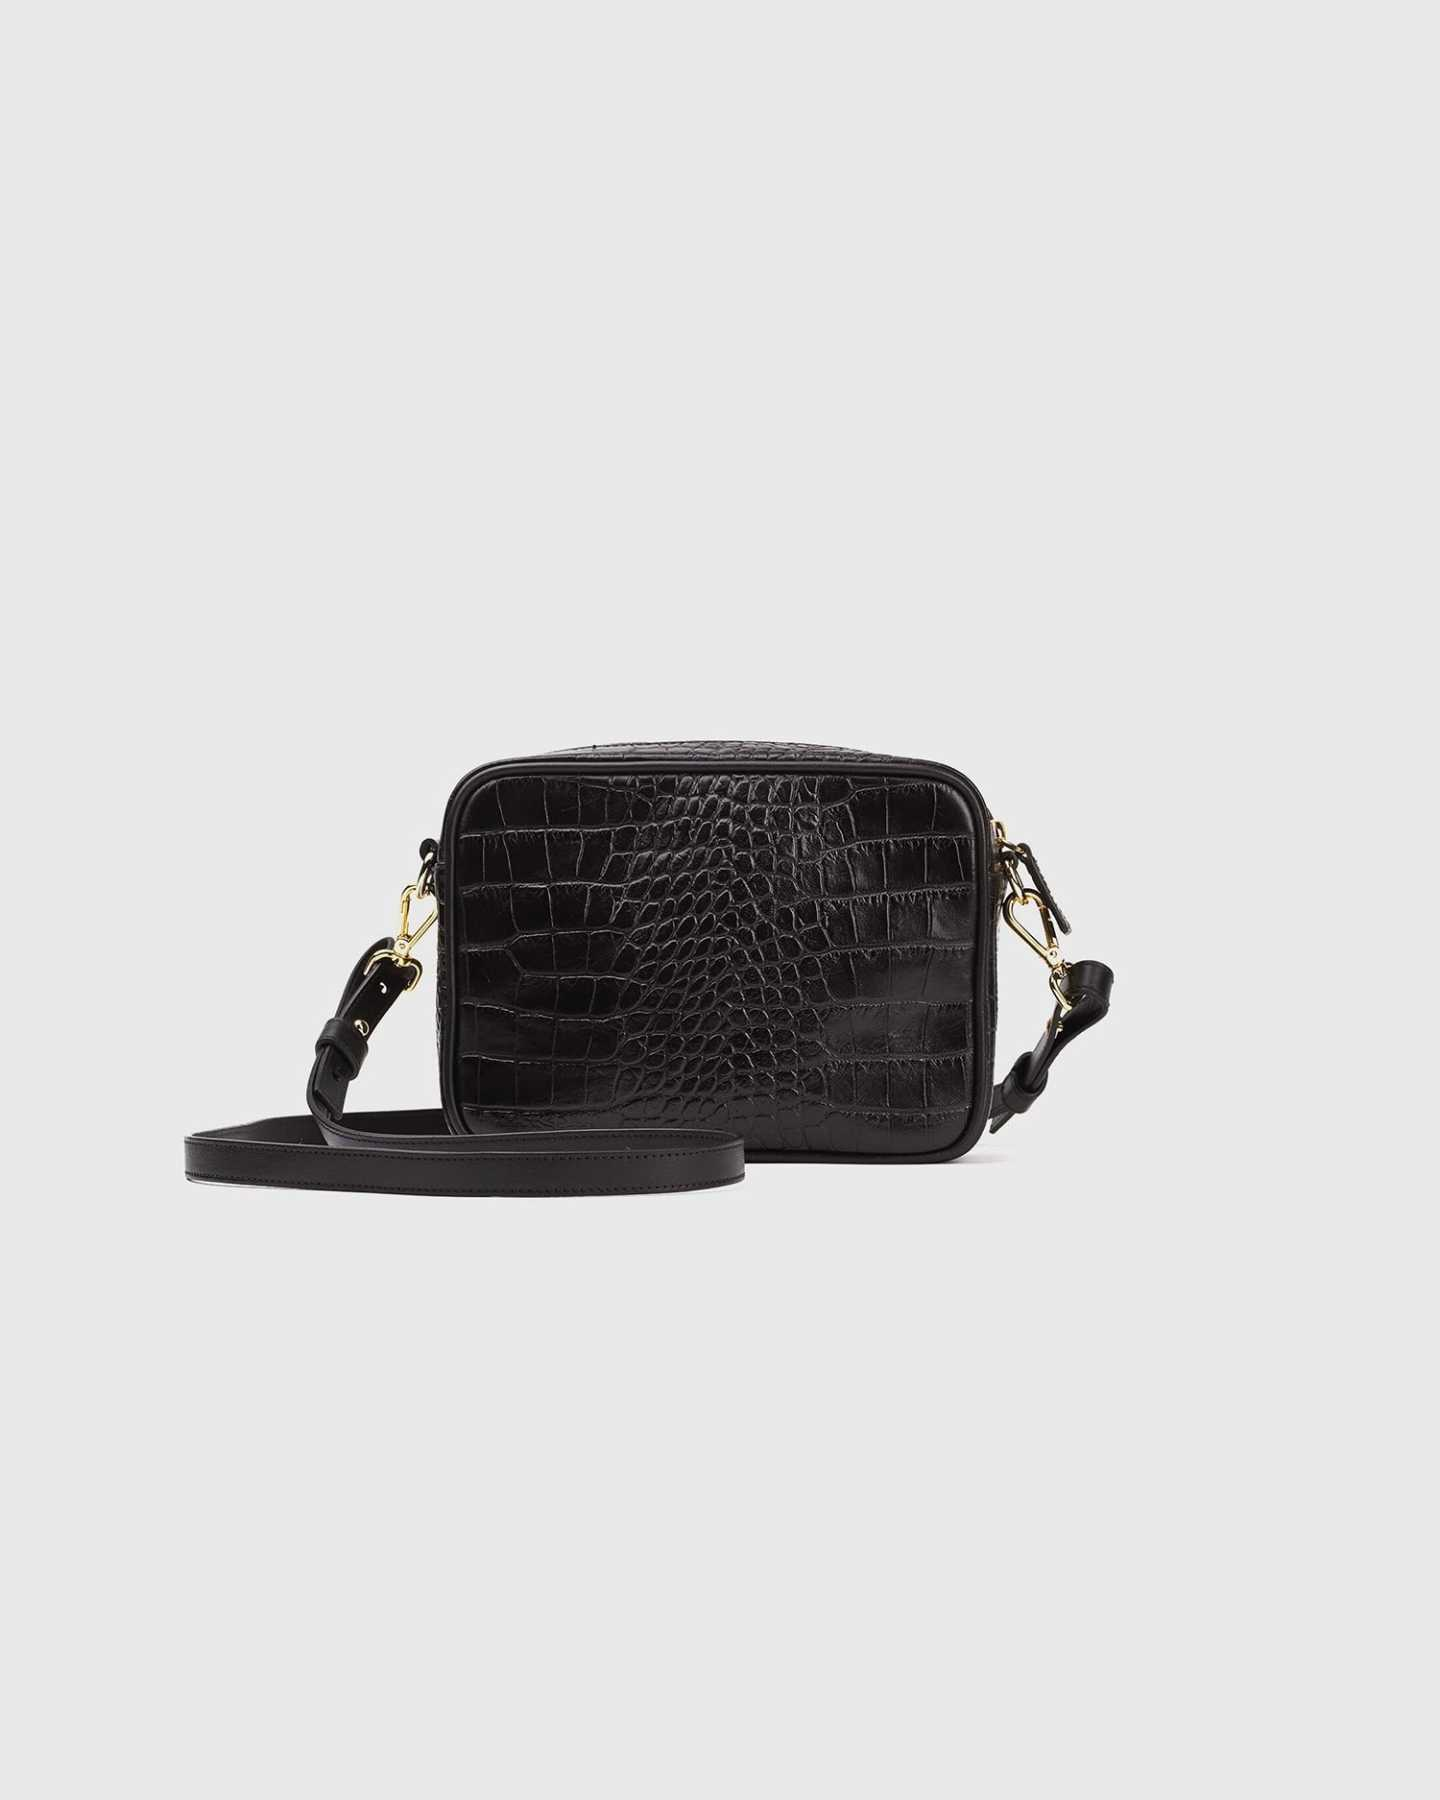 Small black leather crossbody bag with croco emboss